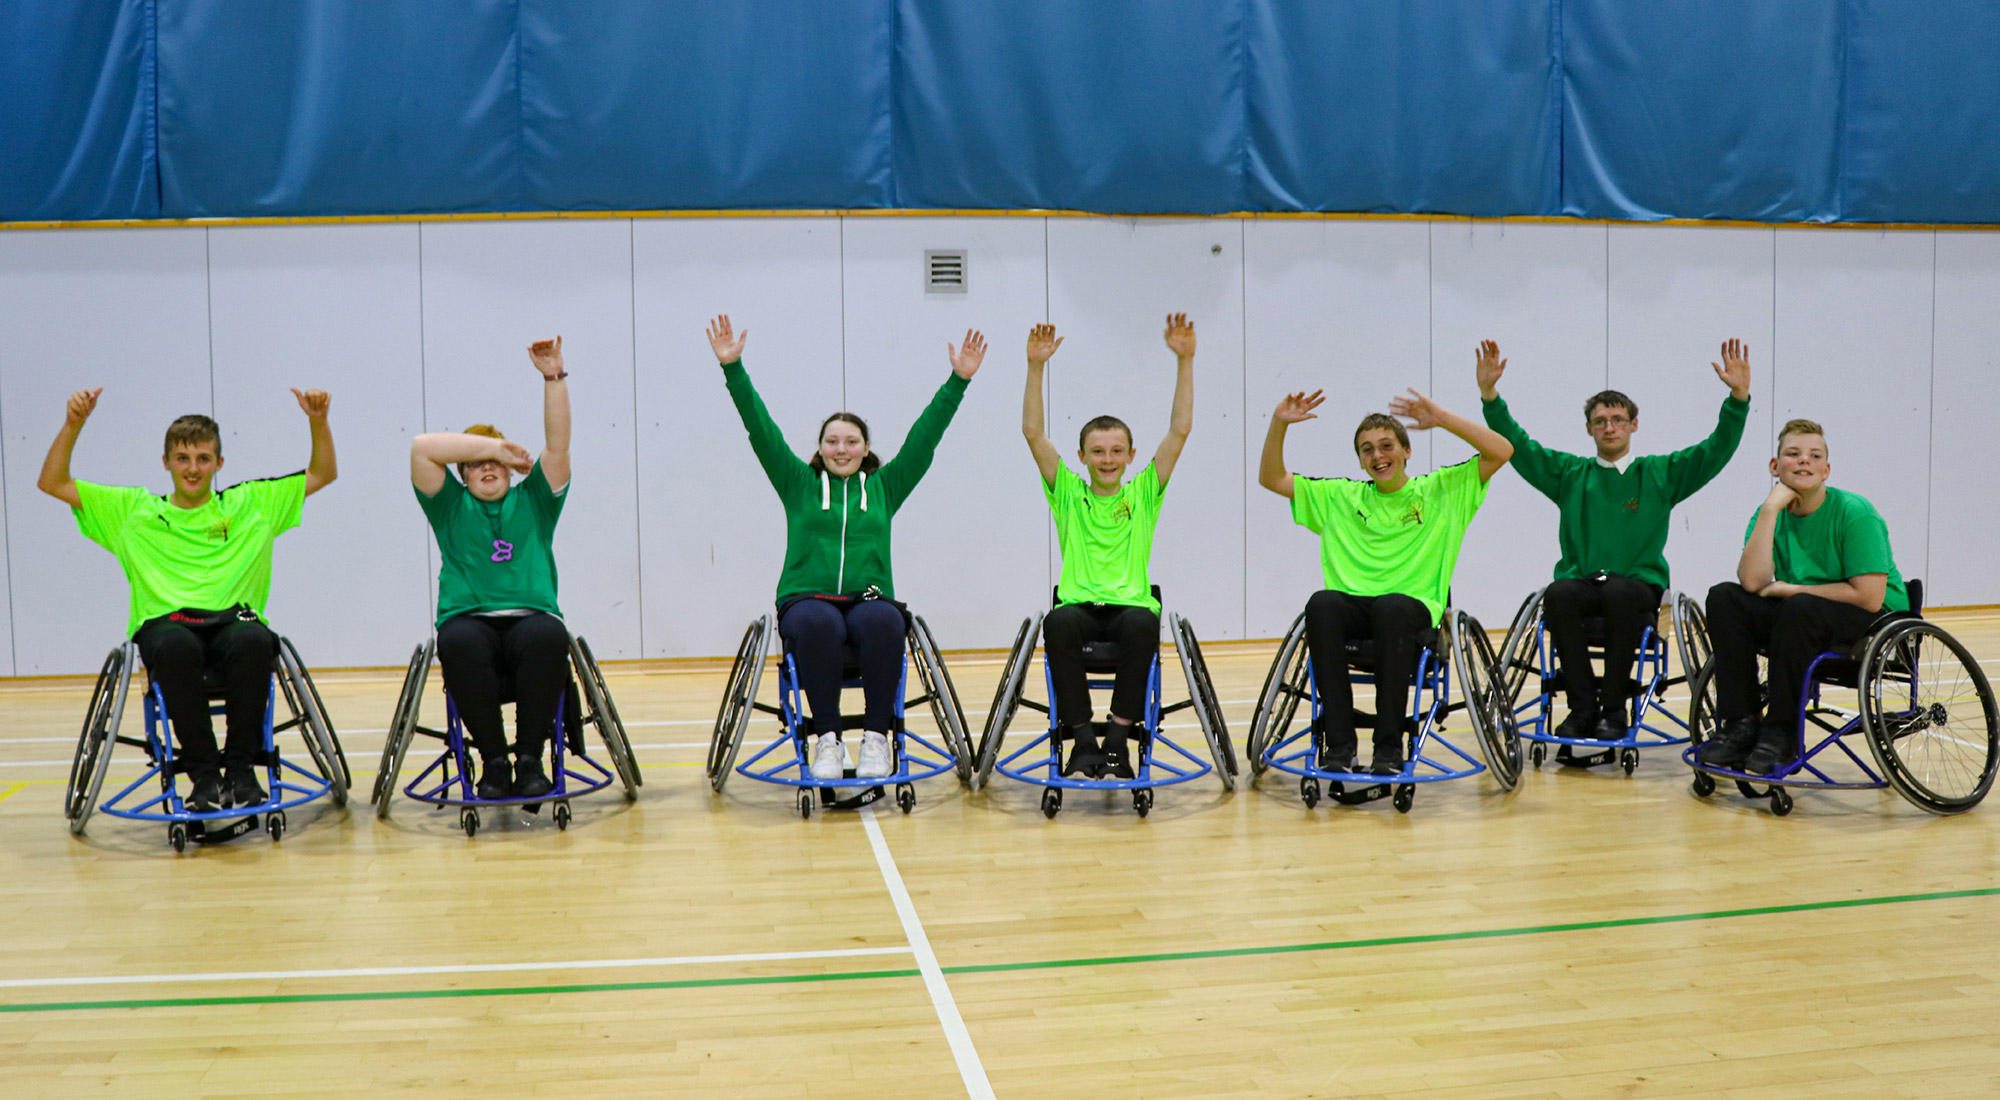 Showcasing inclusivity at Stoke Mandeville Stadium as part of the European Week of Sport